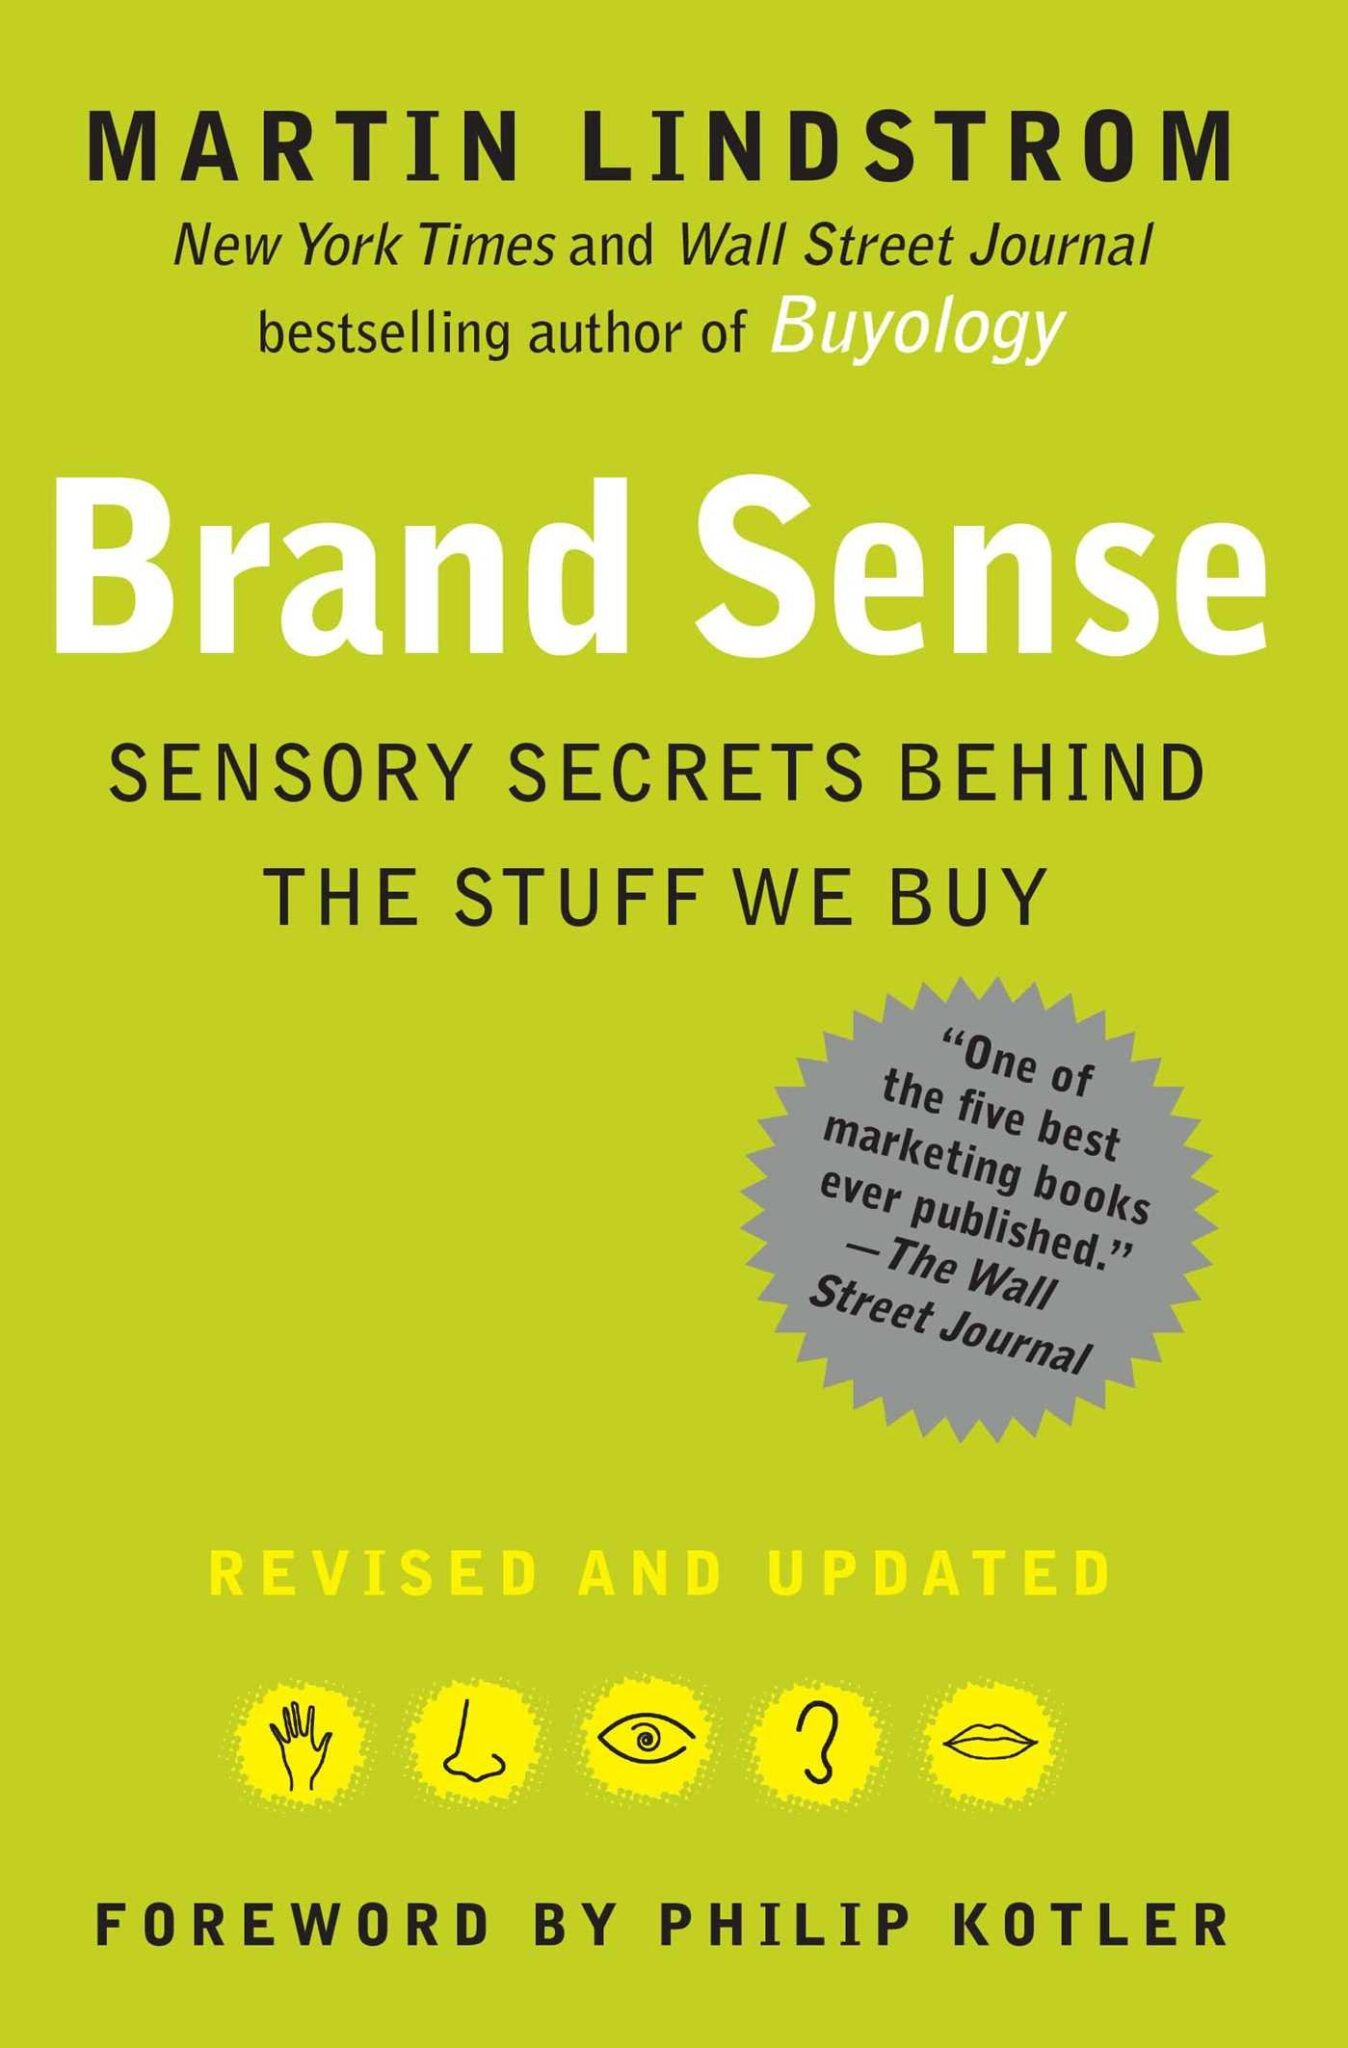 Brand Sense: Sensory Secrets Behind the Stuff We Buy.